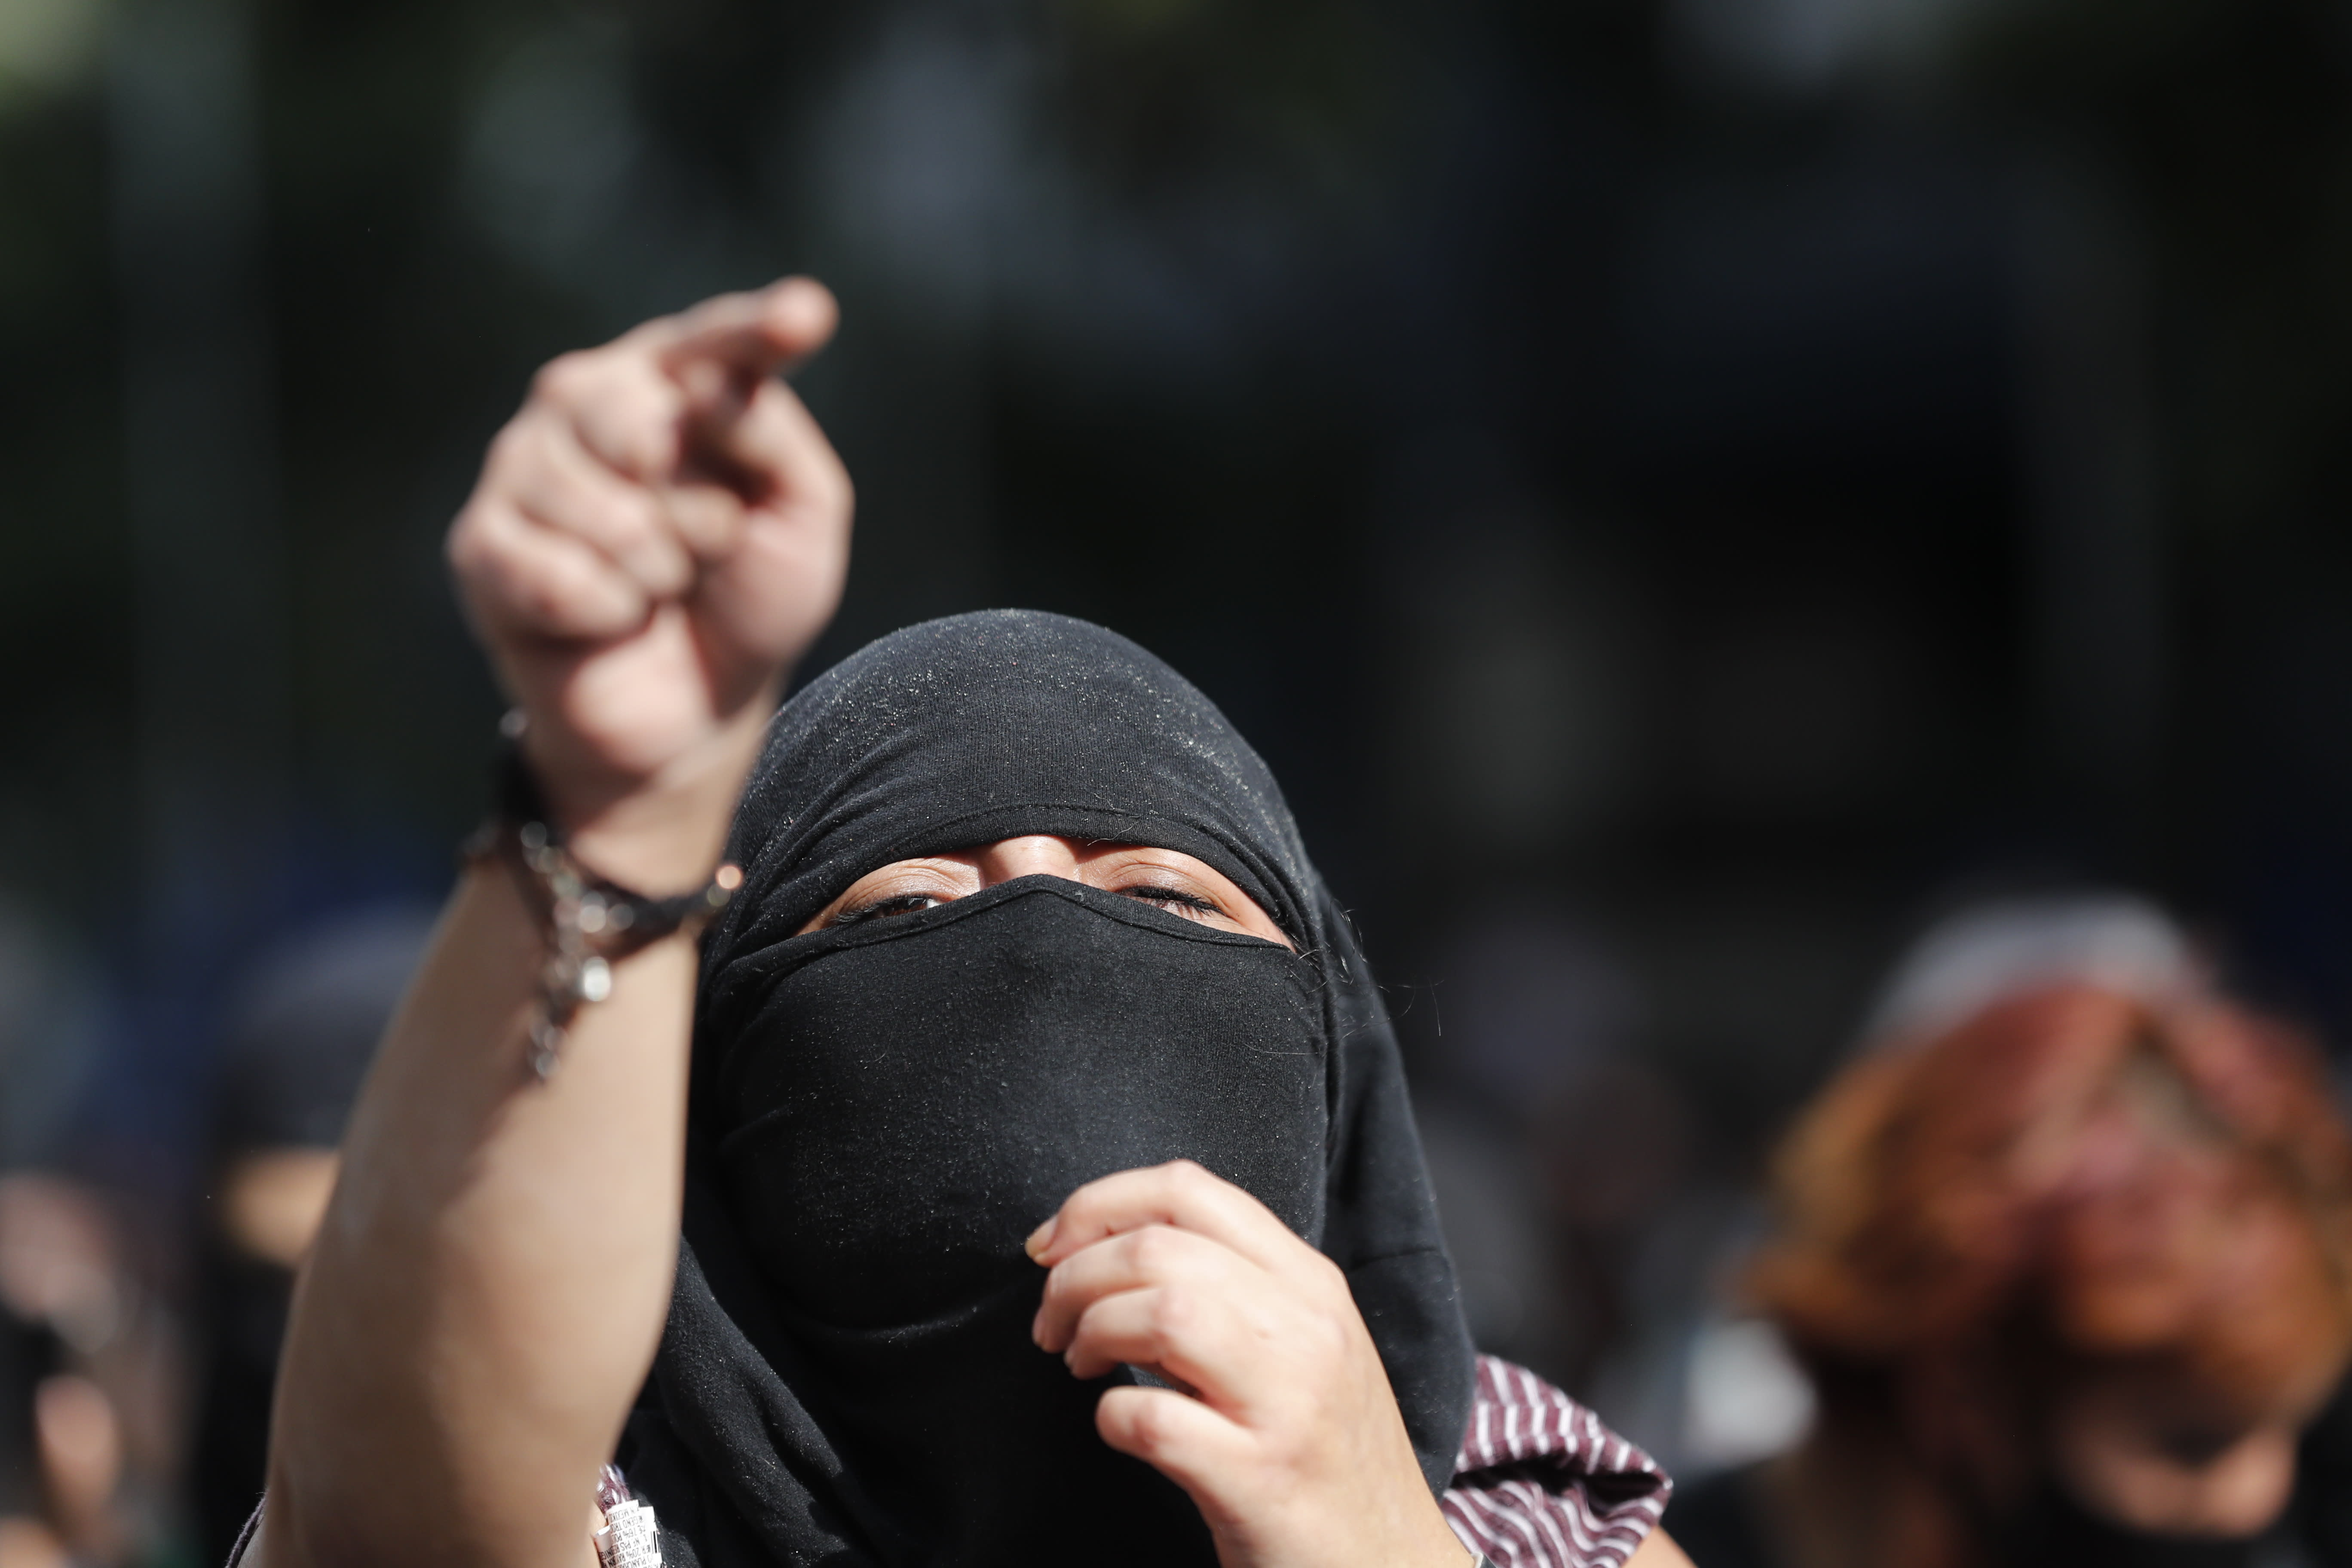 A demonstrator shouts during a march supporting abortion rights in Mexico City, Monday, Sept. 28, 2020. (AP Photo/Marco Ugarte)